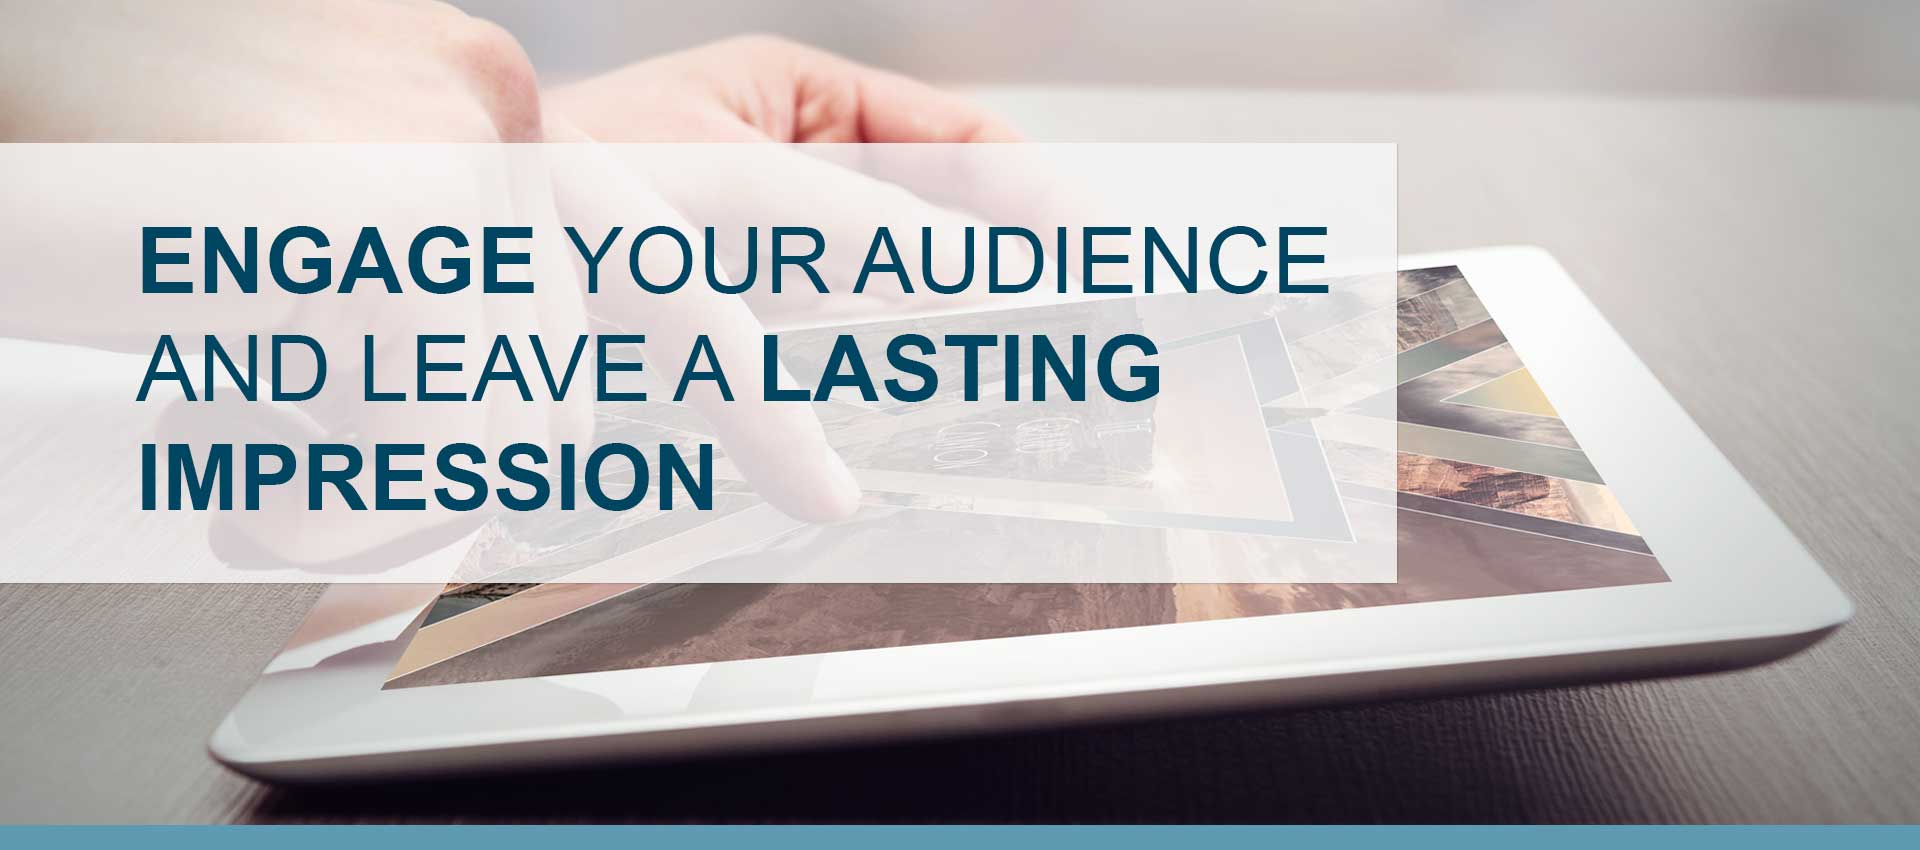 Engage your audience and leave a lasting impression